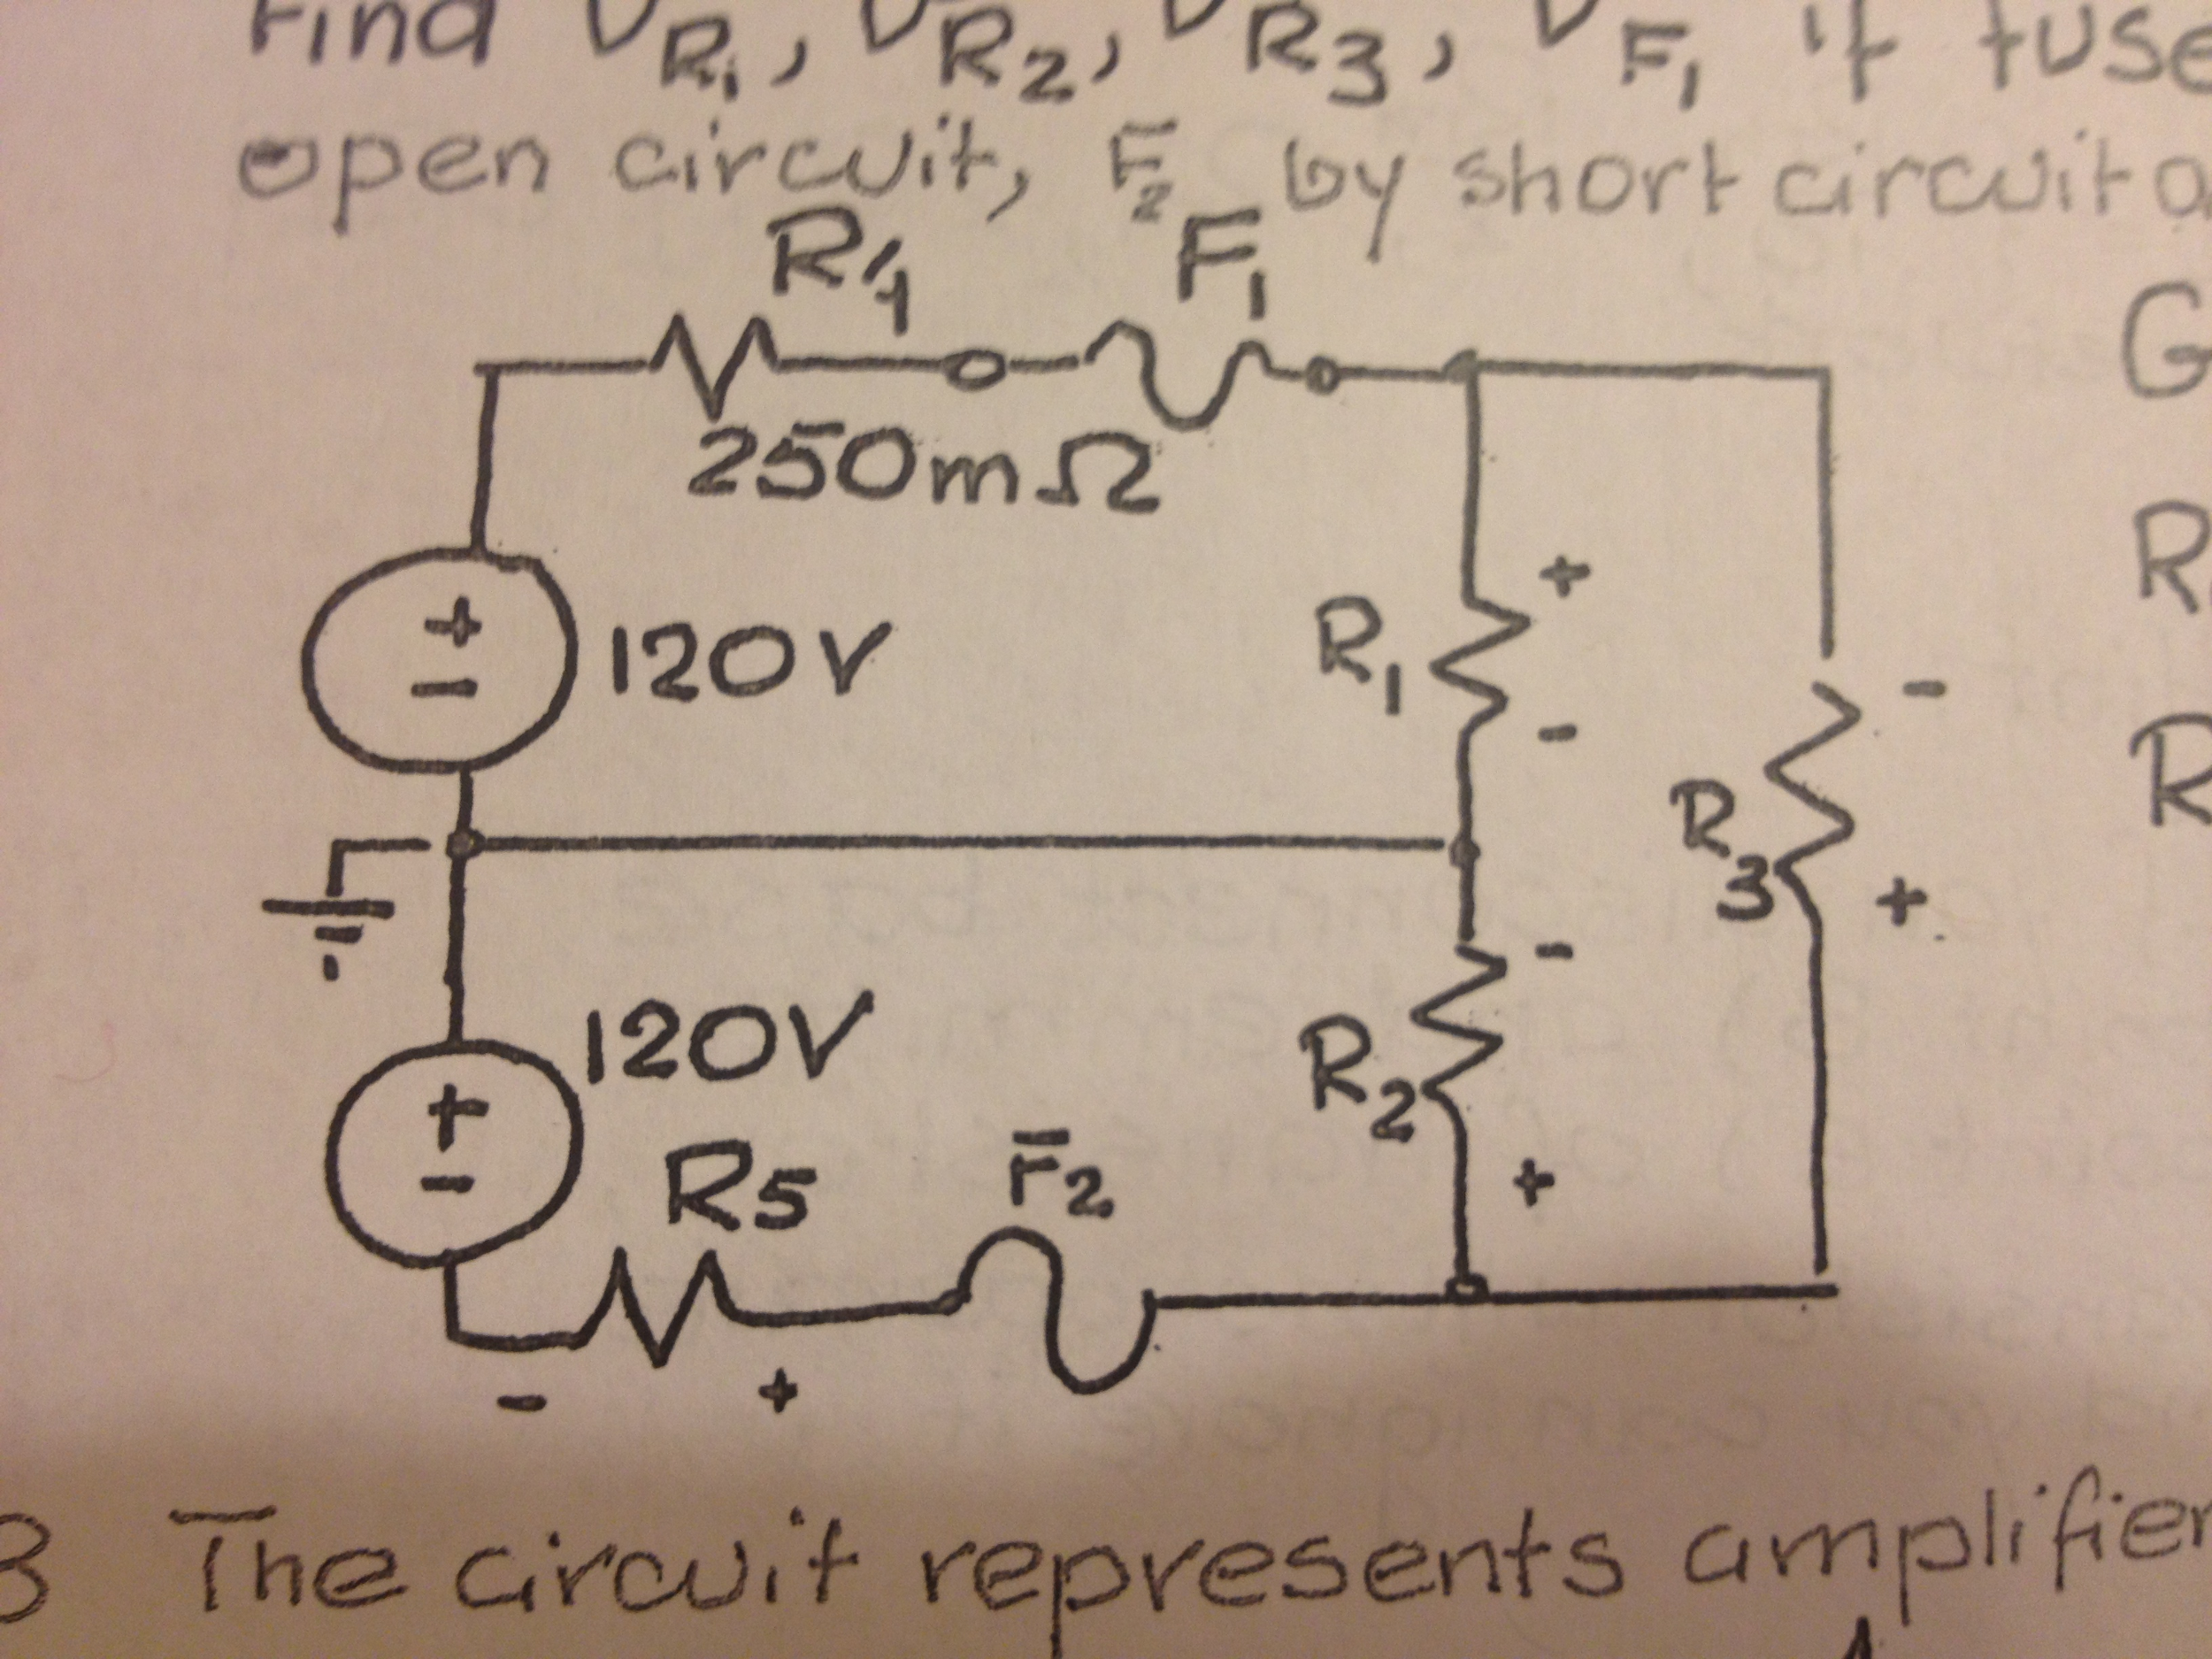 The circuit represents residential power distribut